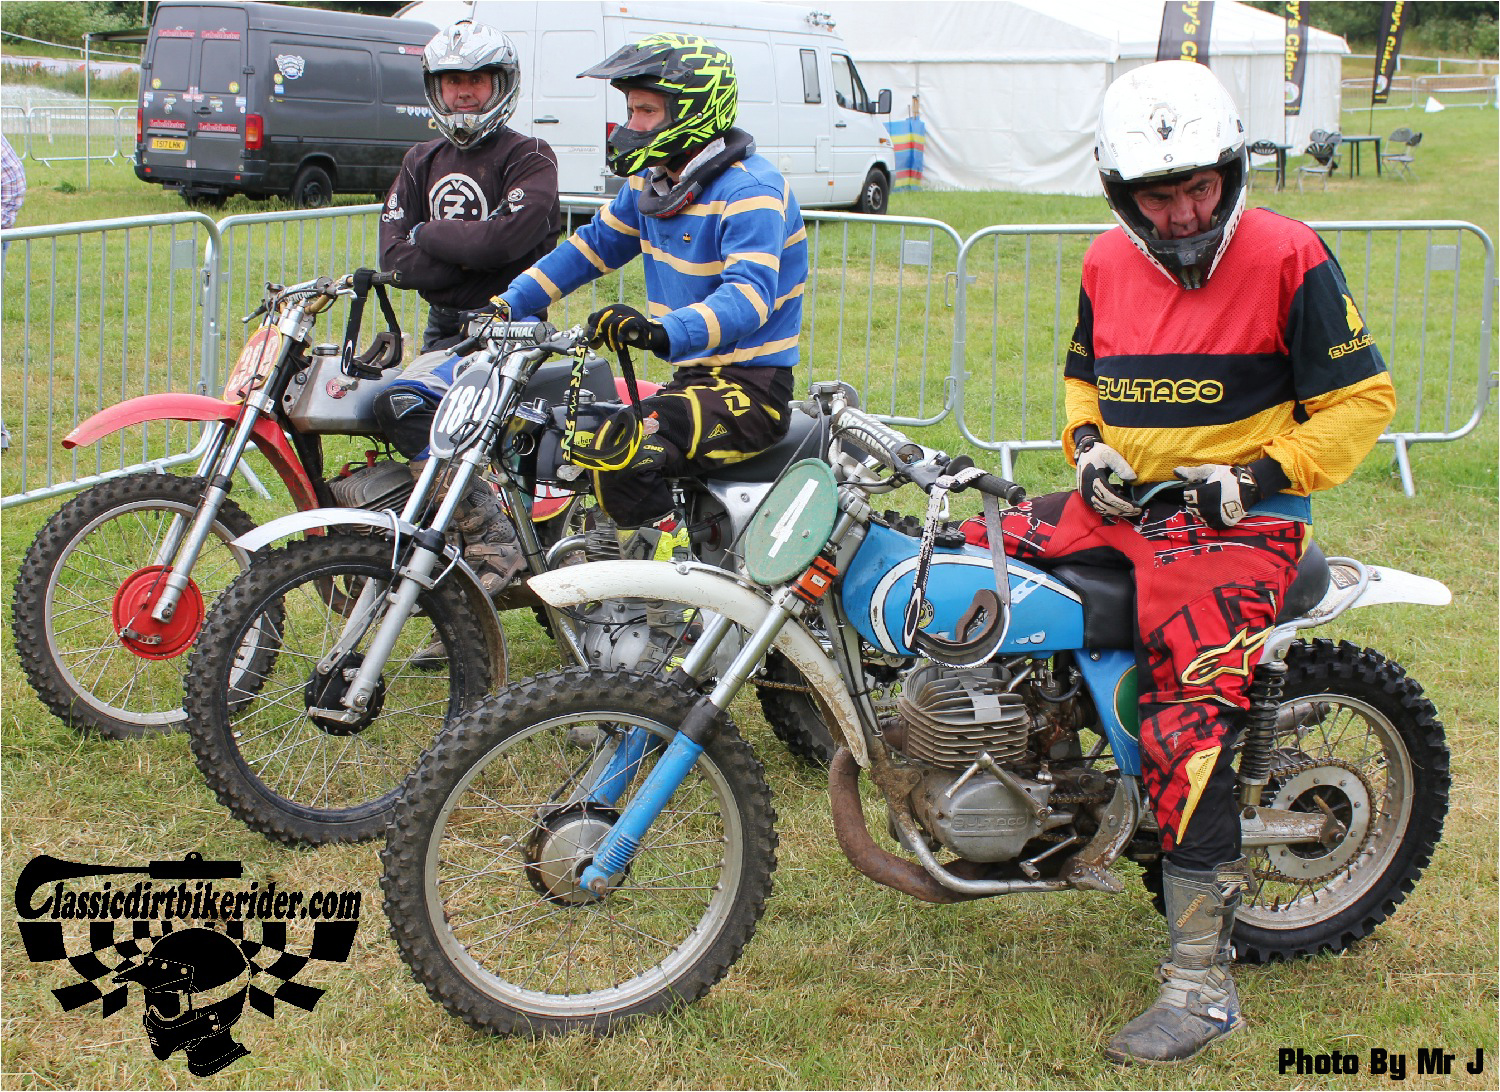 king of the castle 2015 photos Farleigh Castle twinshock motocross classicdirtbikerider.com 1